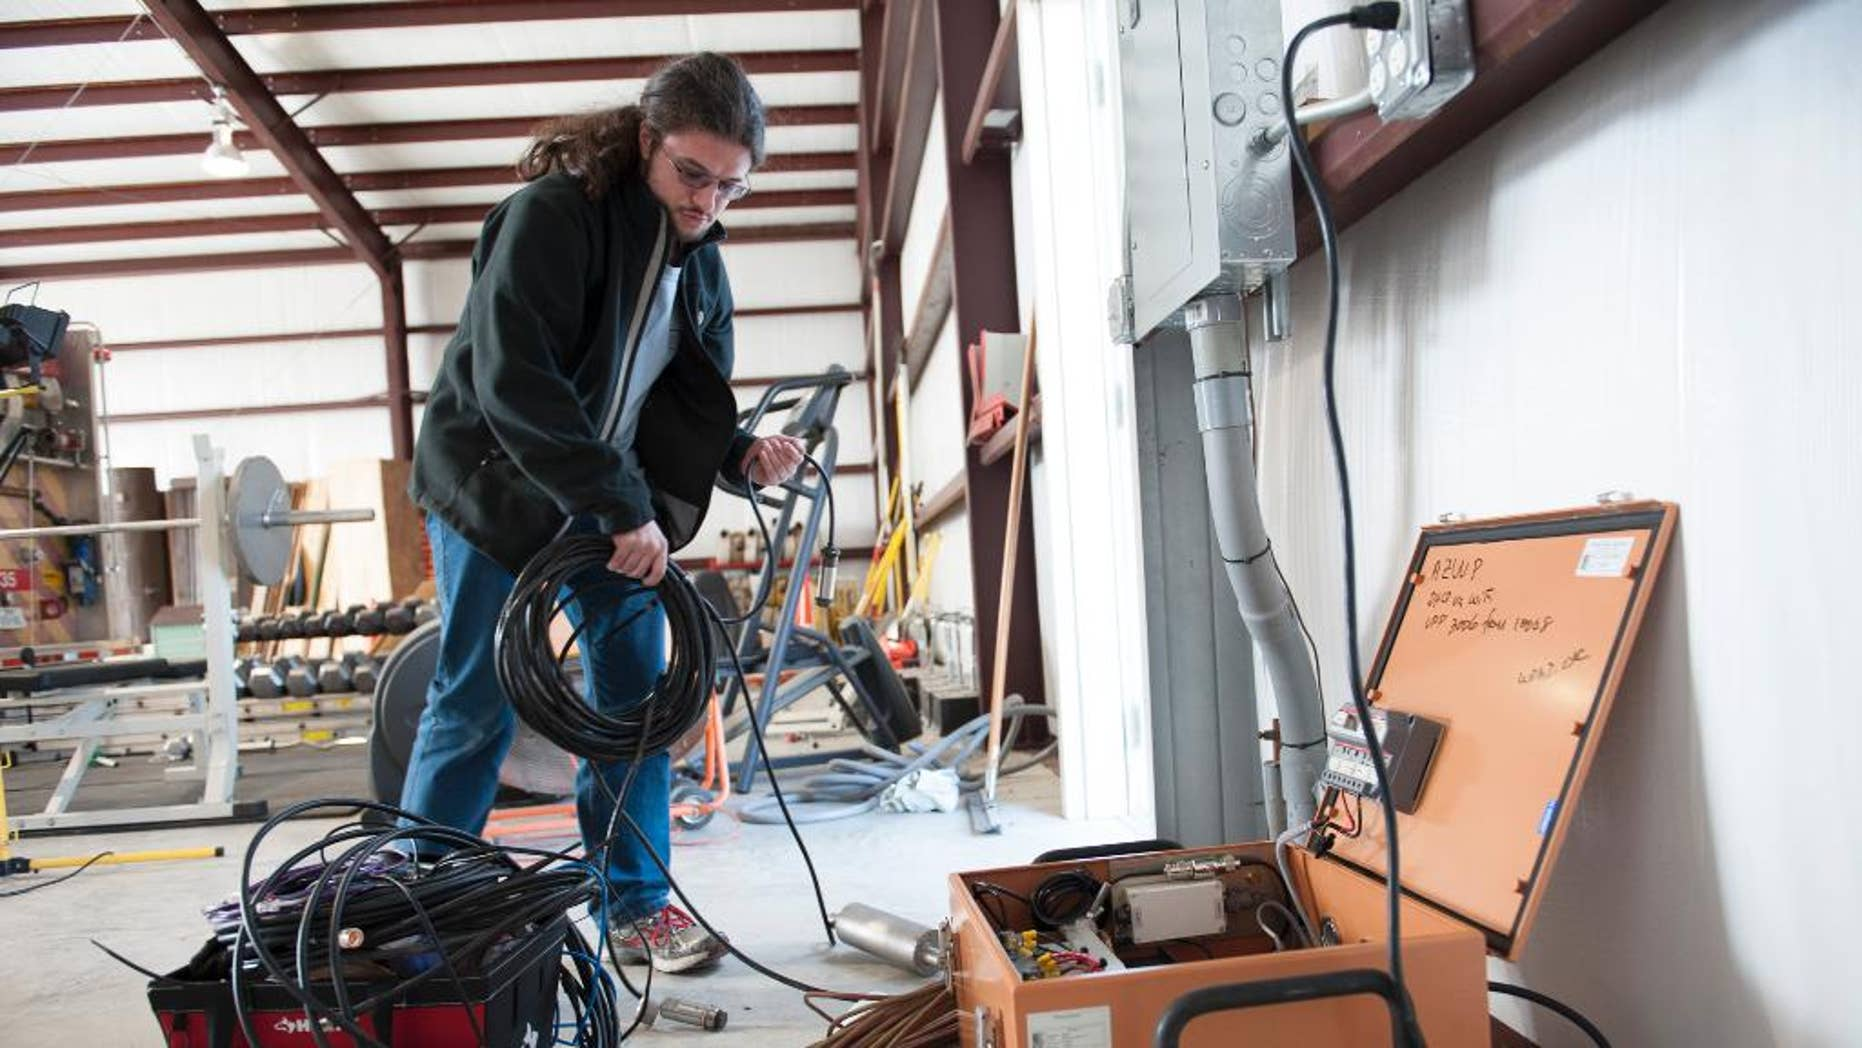 """This handout photo, taken Jan. 16, 2014, provided by Southern Methodist University, shows Remi Oldham, an SMU geophysics graduate student, running a cable to connect the seismometer to communications interface equipment housed in the orange metal box in Willow Park, Texas. The interface equipment allows the transmission of the data collected by the seismometer back to SMU. With real-time monitors, scientists linked a swarm of small earthquakes west of Fort Worth, Texas, to nearby natural gas wells and wastewater injection. In 84 days from November 2013 to January 2014, the area around Azle, Texas, shook with 27 magnitude 2 or greater earthquakes, while scientists at Southern Methodist University and the U.S. Geological Survey monitored the shaking. It's an area that had no recorded quakes for 150 years on faults that """"have been inactive for hundreds of millions of years,"""" said SMU geophysicist Matthew Hornbach. (Hillsman Stuart Jackson/SMU via AP)  SMU, Dedman School of Humanities, Geology, Research, Seismic, Off Campus, Willow Park, Texas, Secondary Fire Station, Heather Deshon, Chris Hayward, Remi Oldham"""